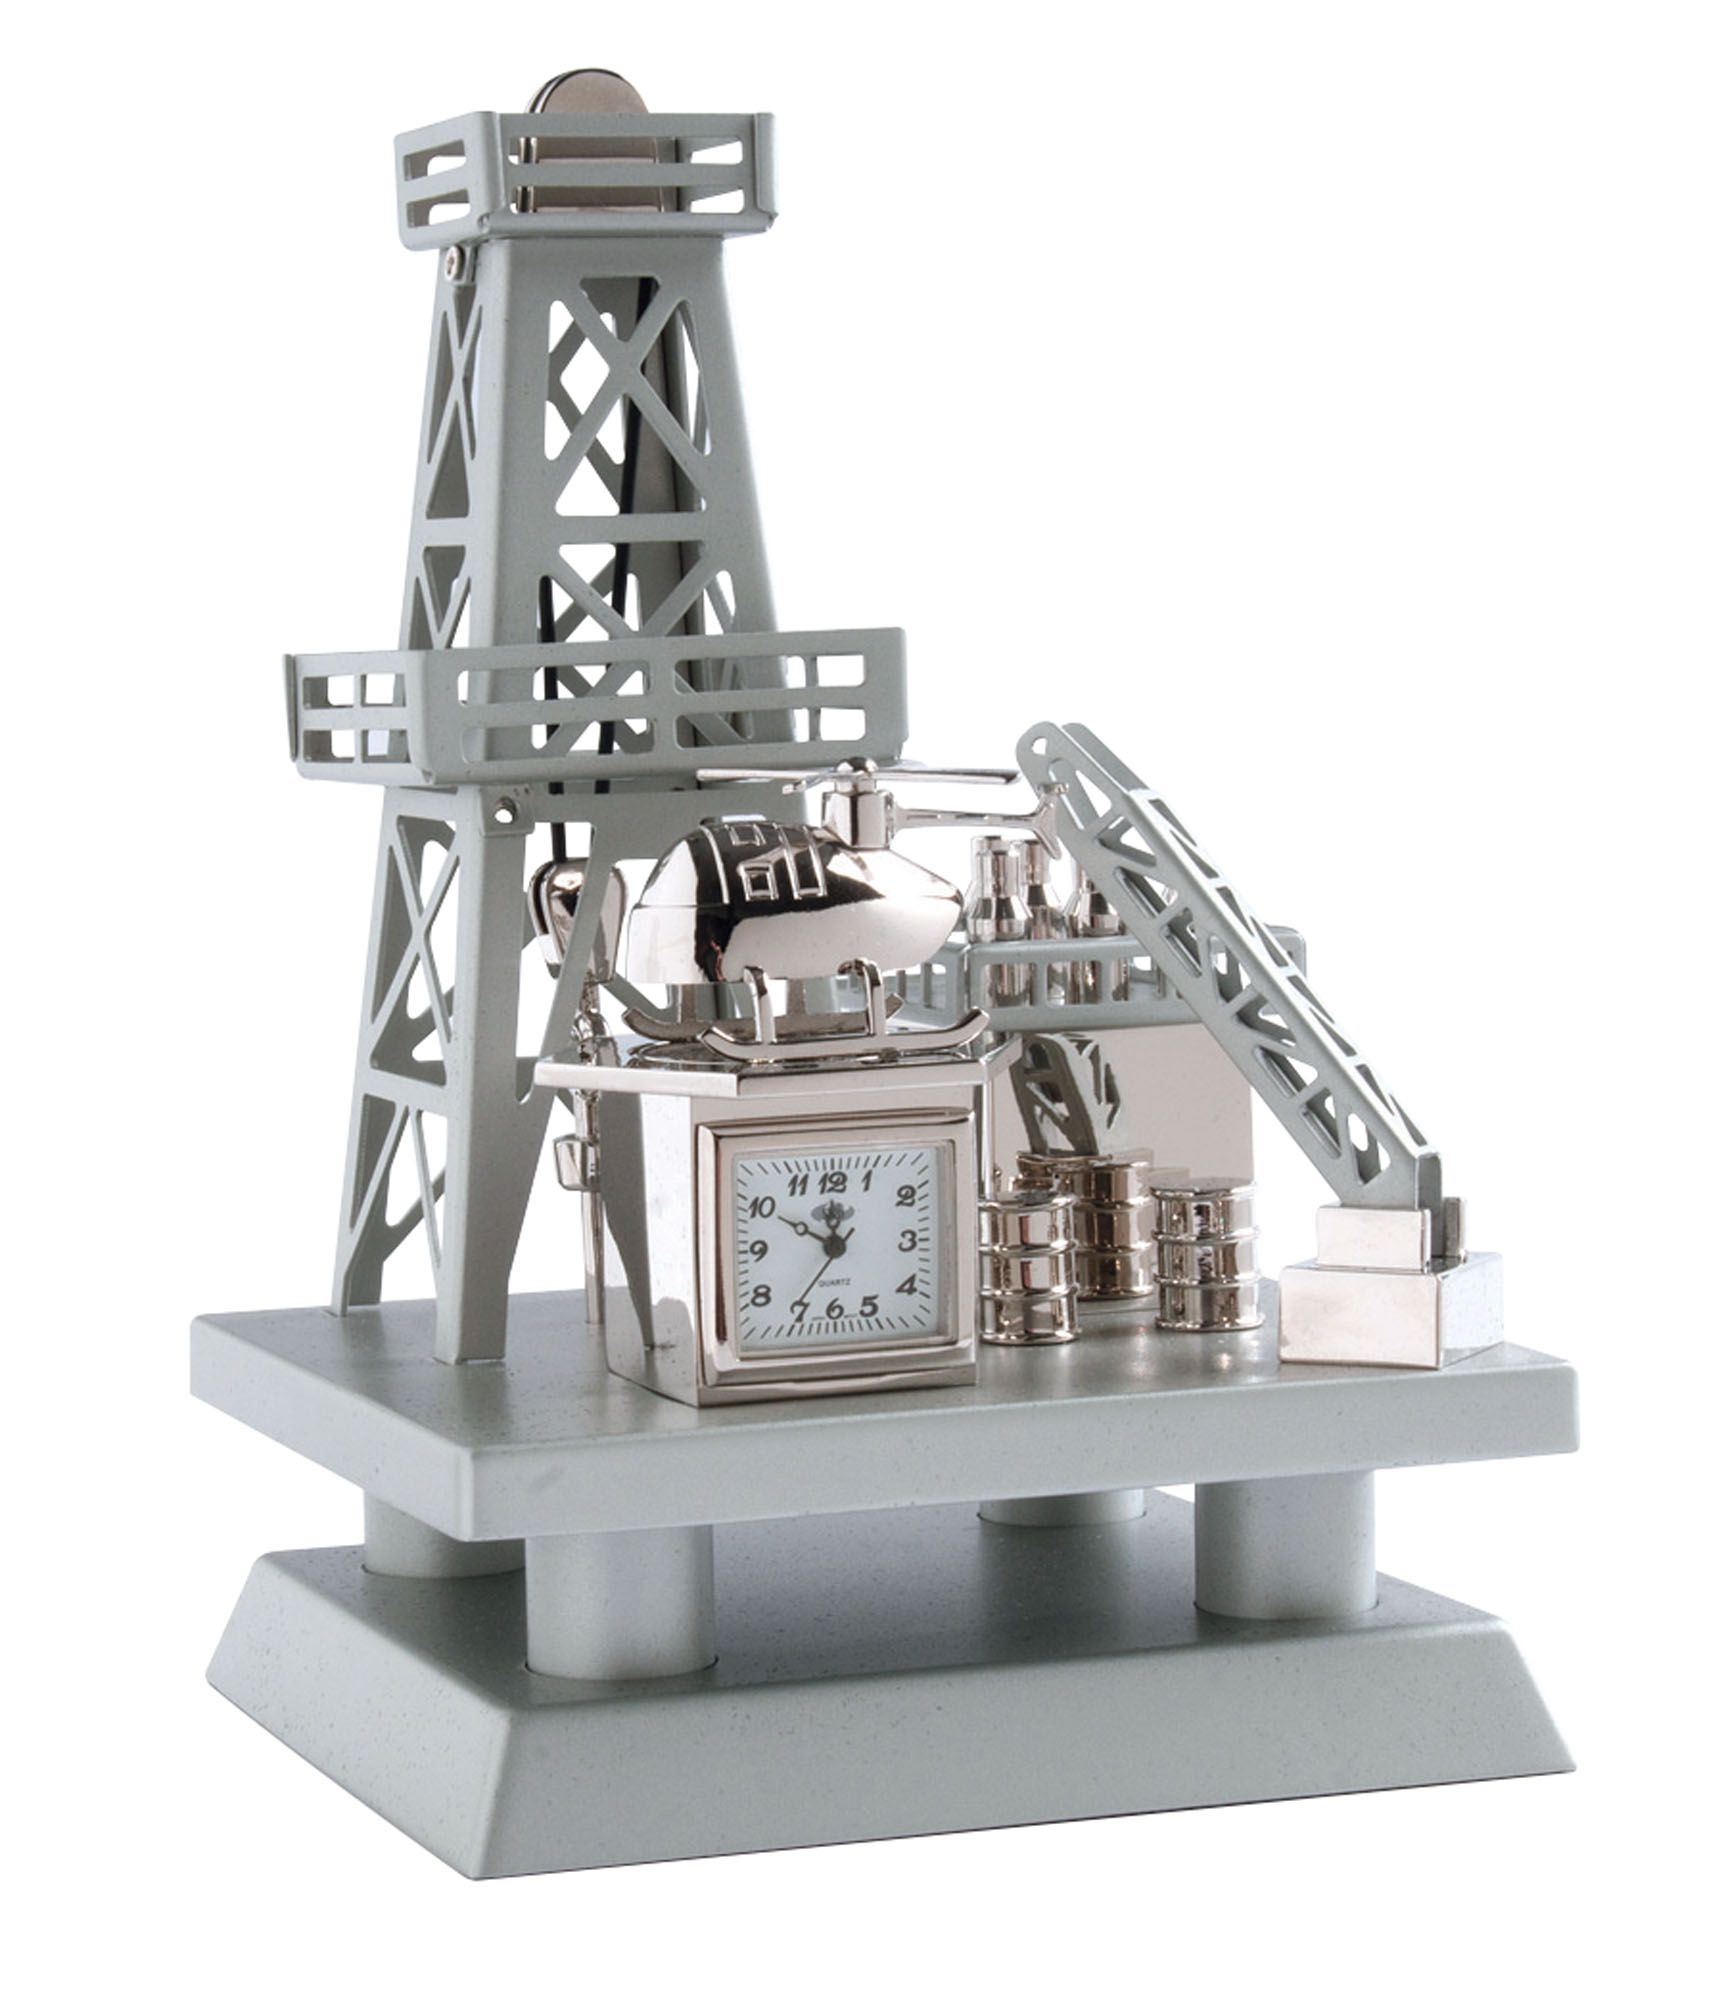 Very Unique Gift For Grads Makes A Great Desk Paperweight Too Graduation Gifts Off S Rig Clock Silver